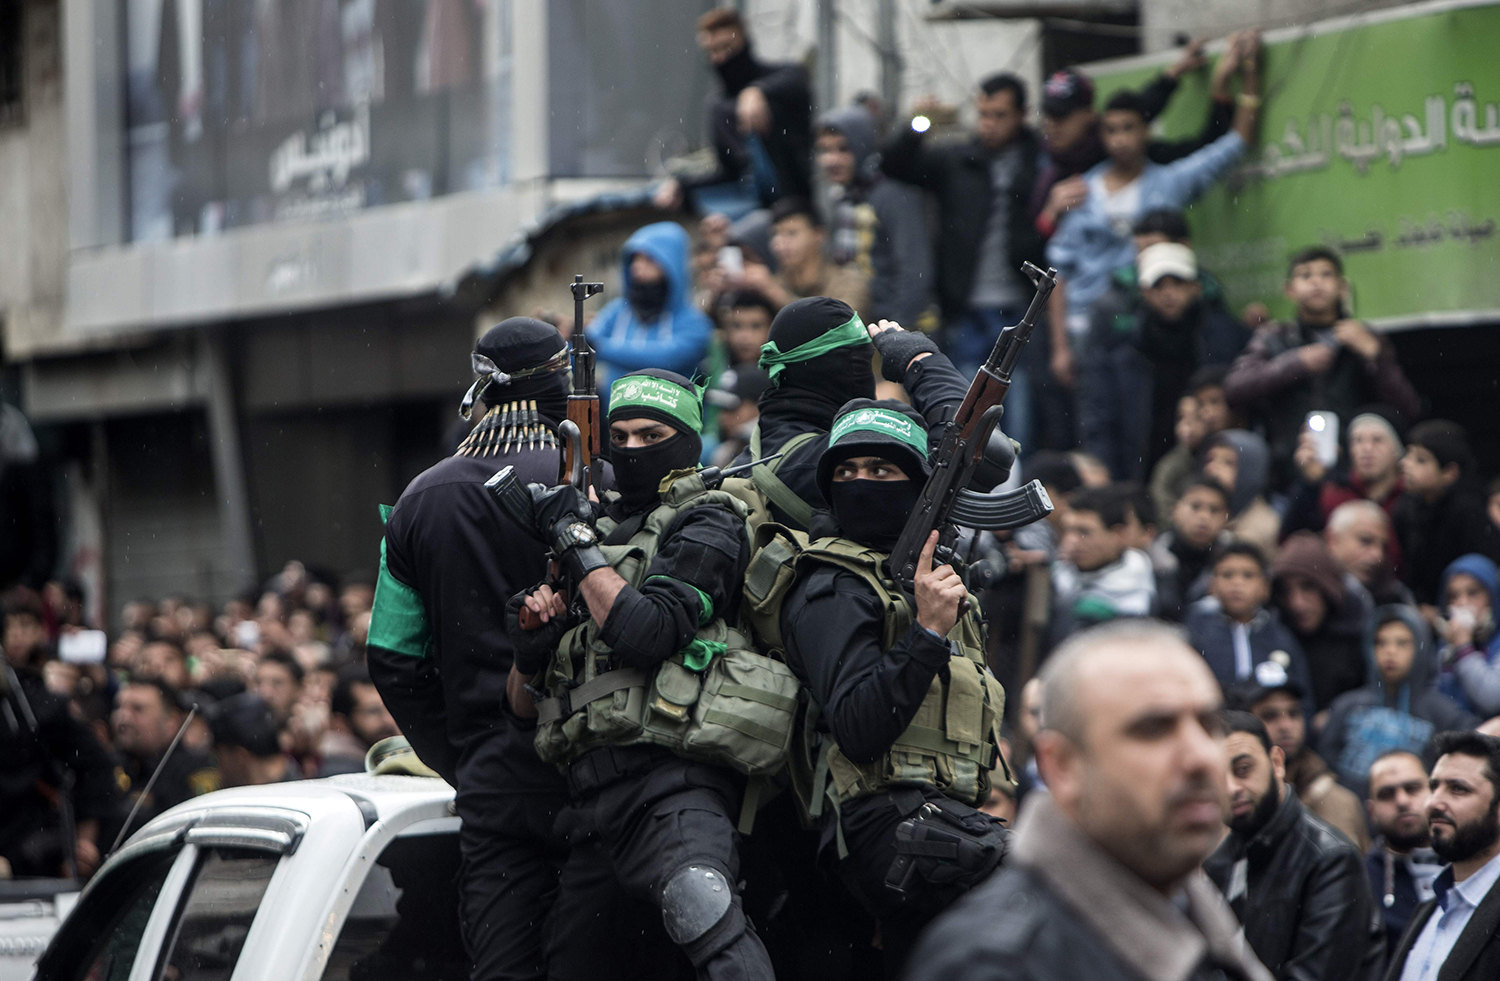 TOPSHOT - Members of the Ezzedine al-Qassam Brigades, the military wing of the Palestinian Islamist movement Hamas, take part in a rally marking the 29th anniversary of the creation of the Hamas movement on December 14, 2016 in Gaza City. / AFP PHOTO / MAHMUD HAMS / TT / kod 444